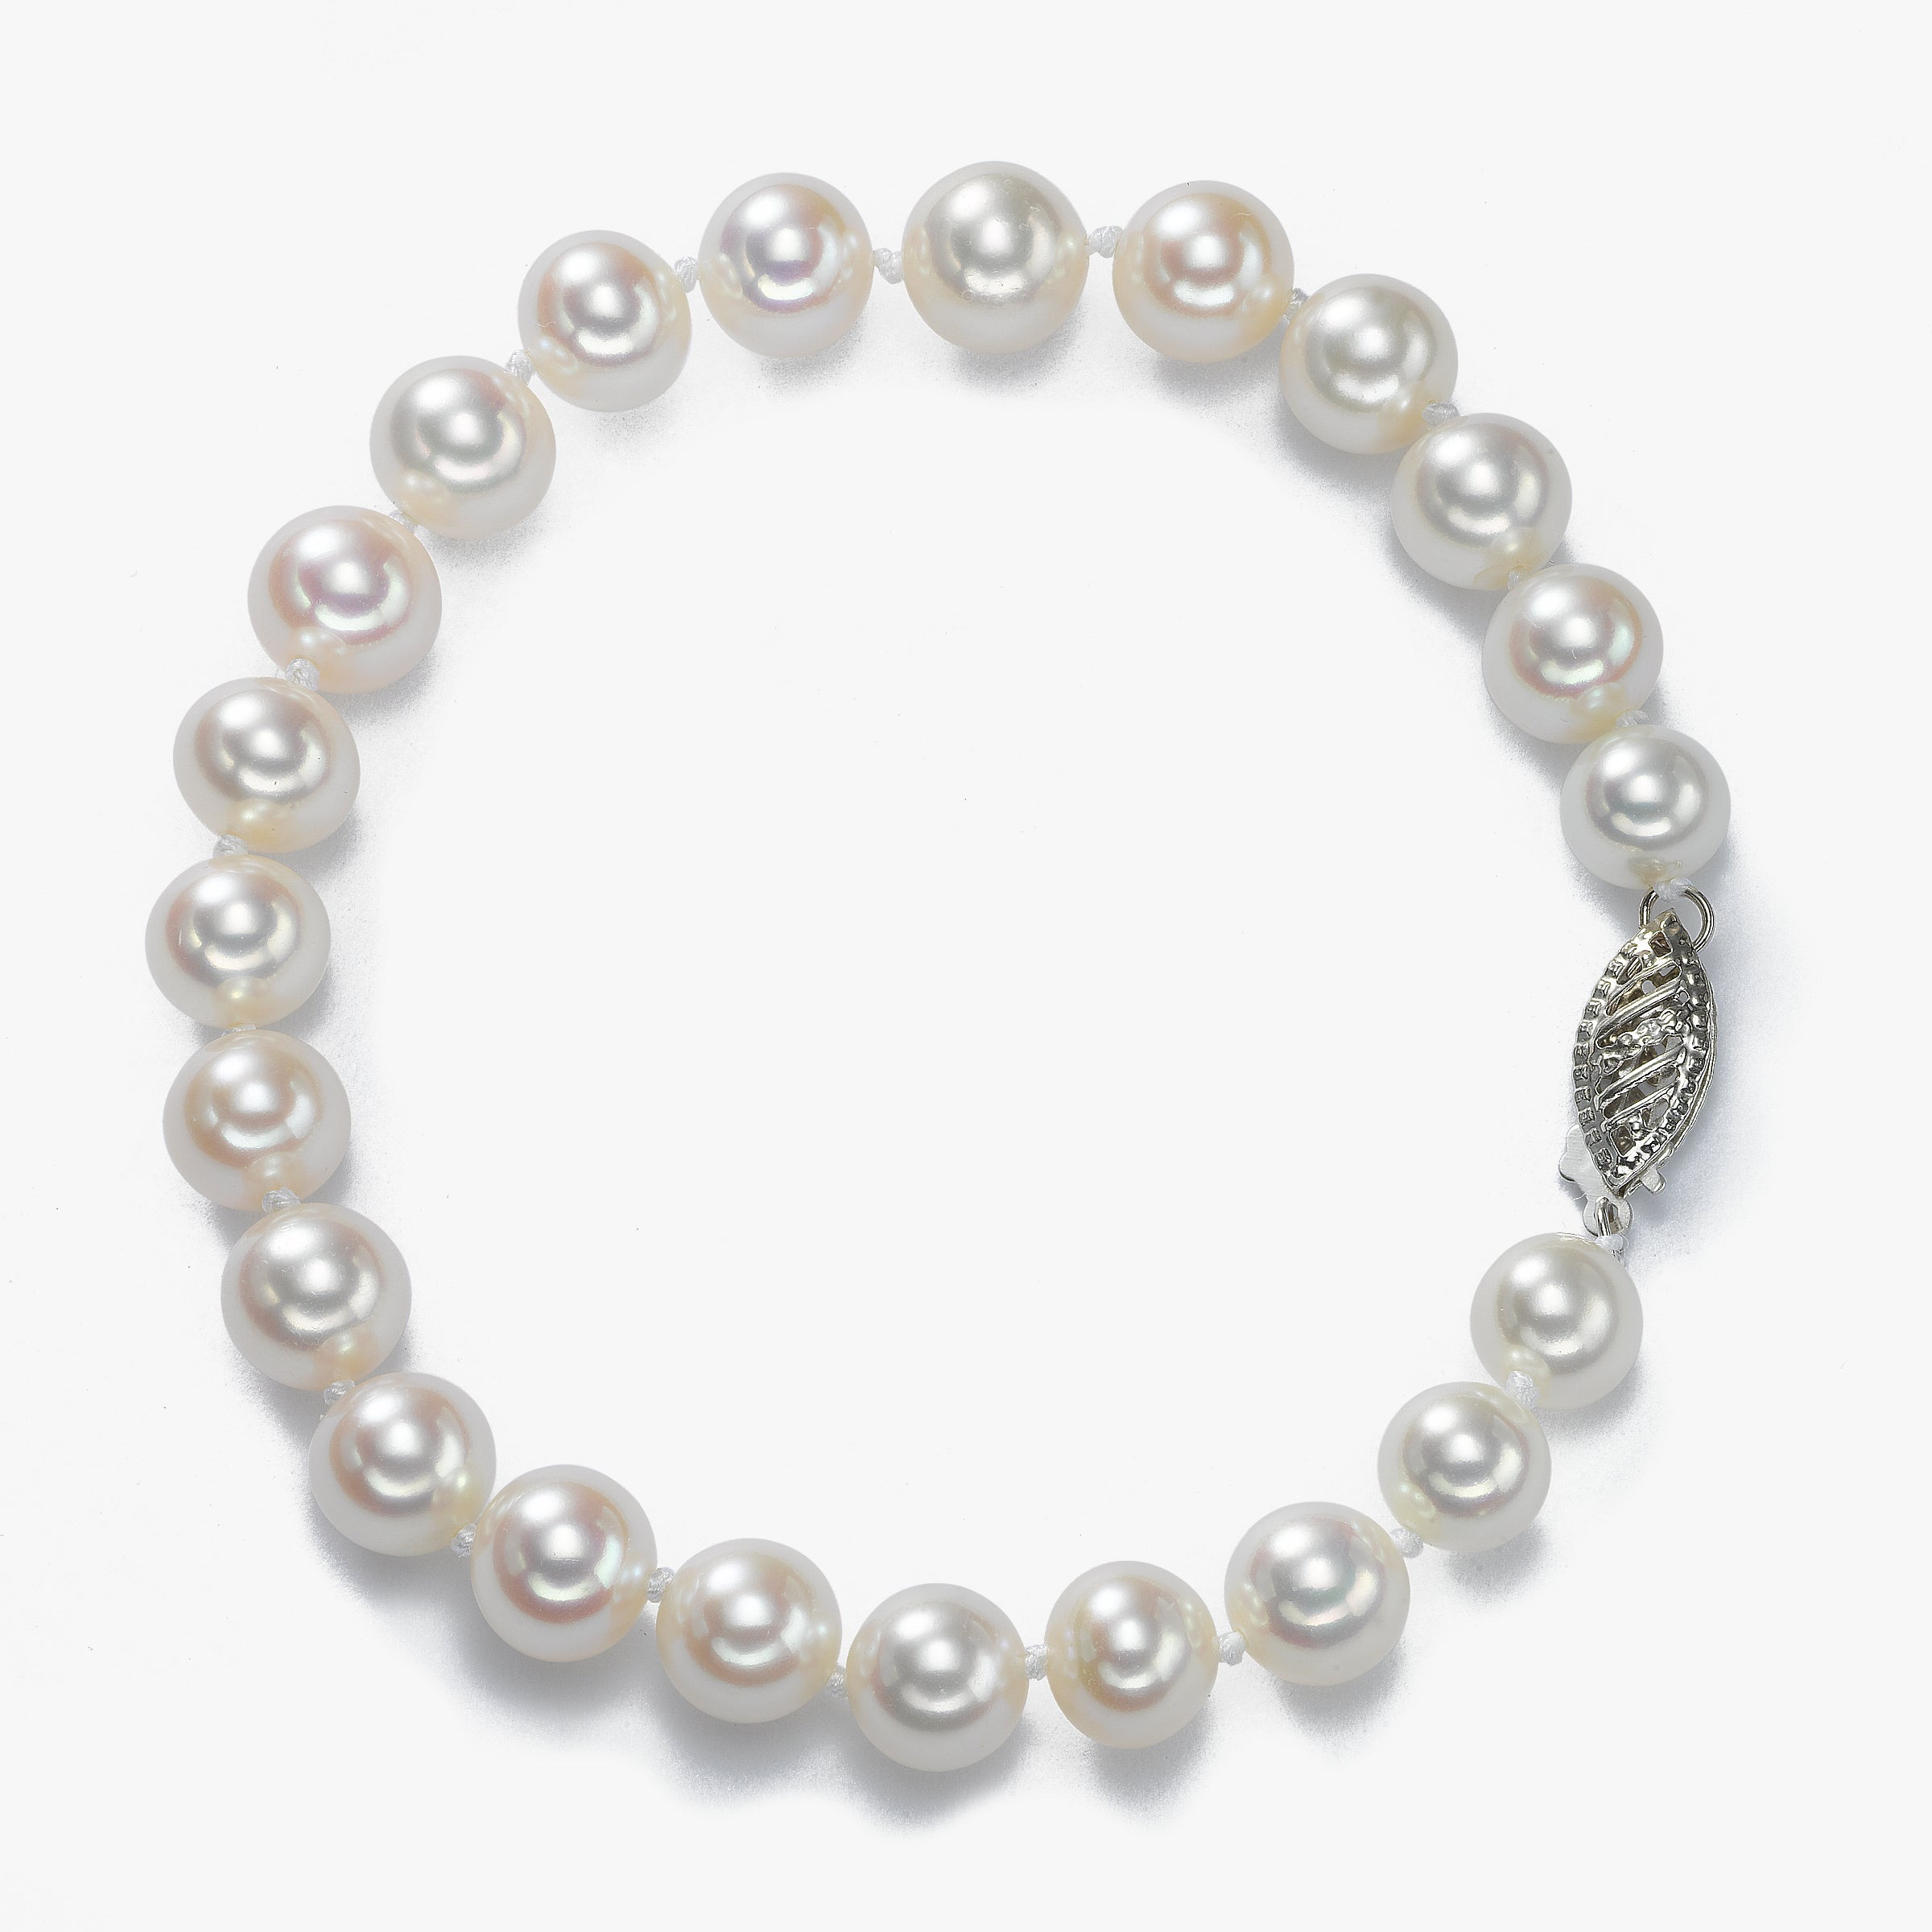 7.5 x 7 MM Freshwater Cultured Pearl Bracelet, 14K